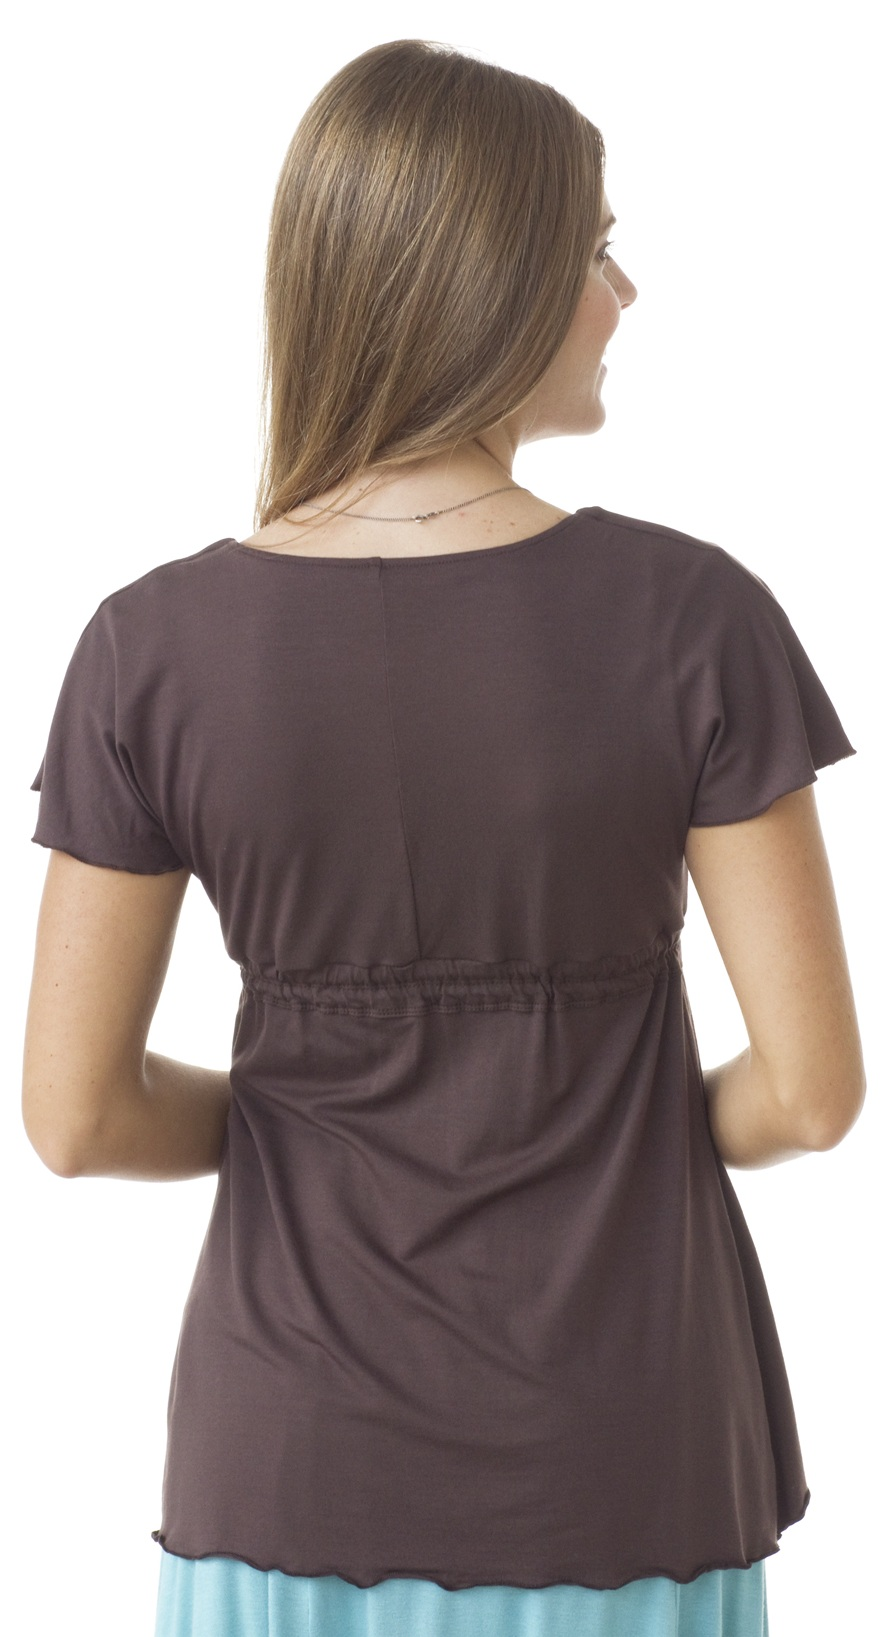 nixilu-corella-nursing-top-brown-back.jpg